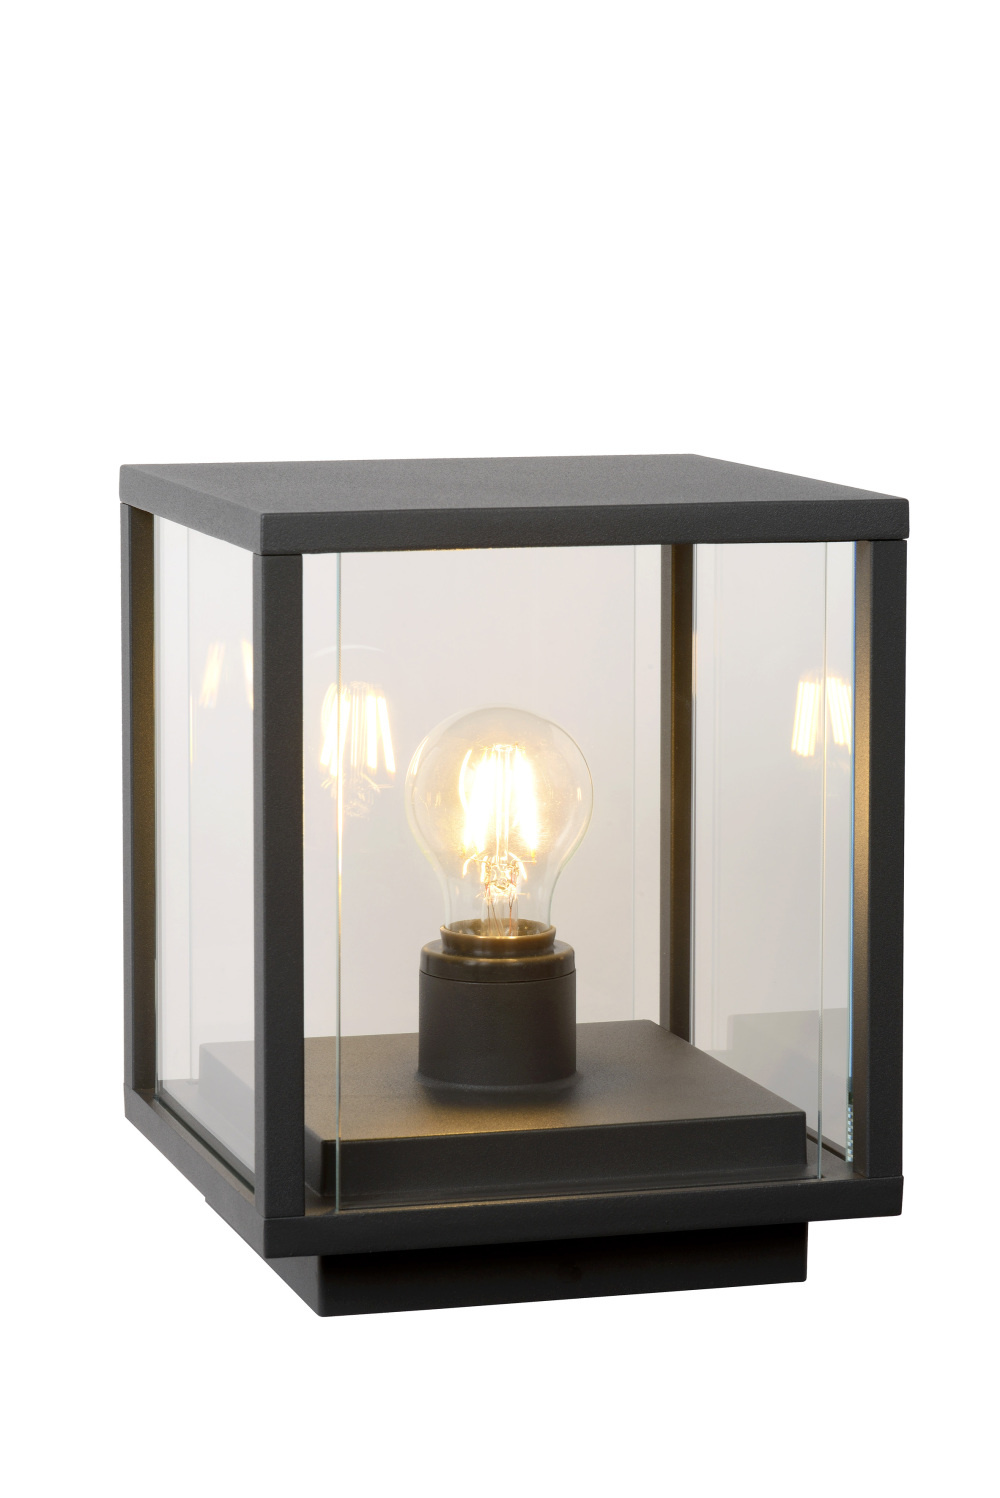 Lucide CLAIRE-LED Sokkel IP54 1xE27W Max15W L20 W20 H25cm